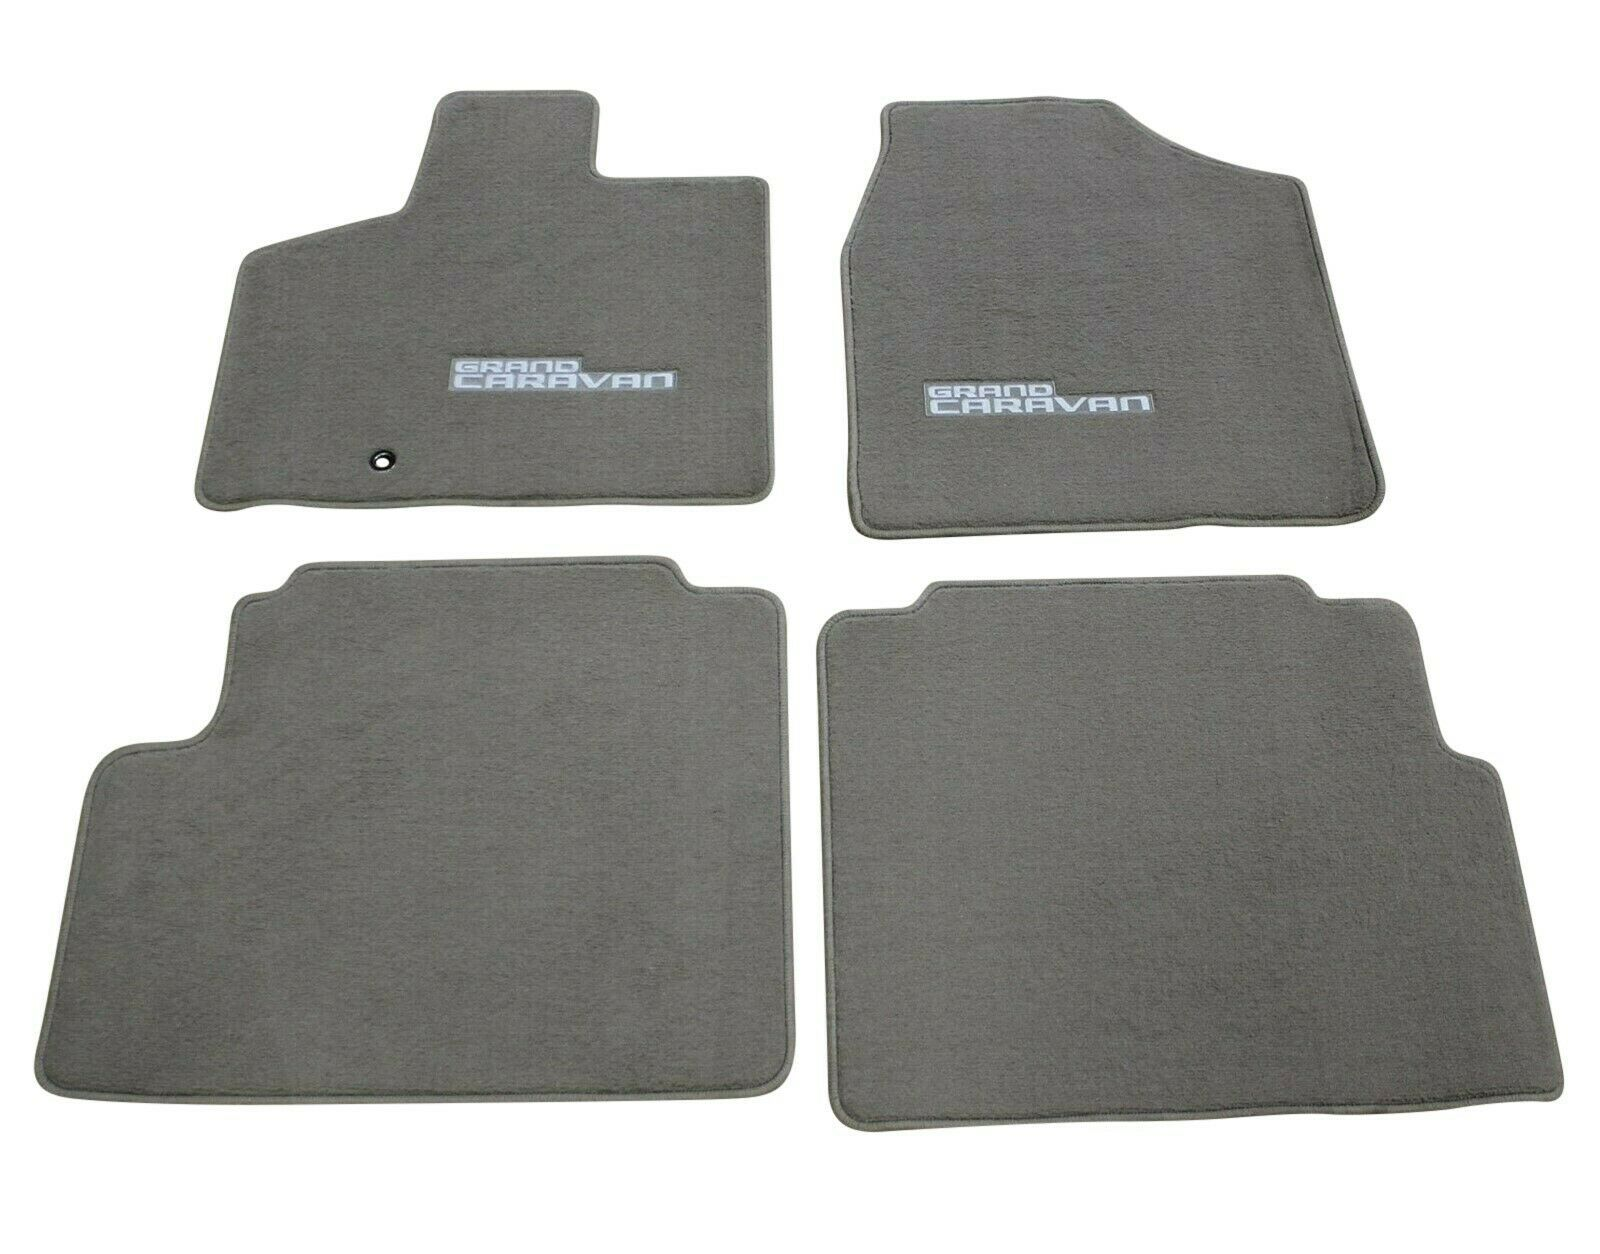 2011 2017 Dodge Grand Caravan Tan Carpet Floor Mats Factory Oem Replacements 42 63 Floor Mats Ideas Of In 2020 2017 Dodge Grand Caravan Grand Caravan Floor Mats